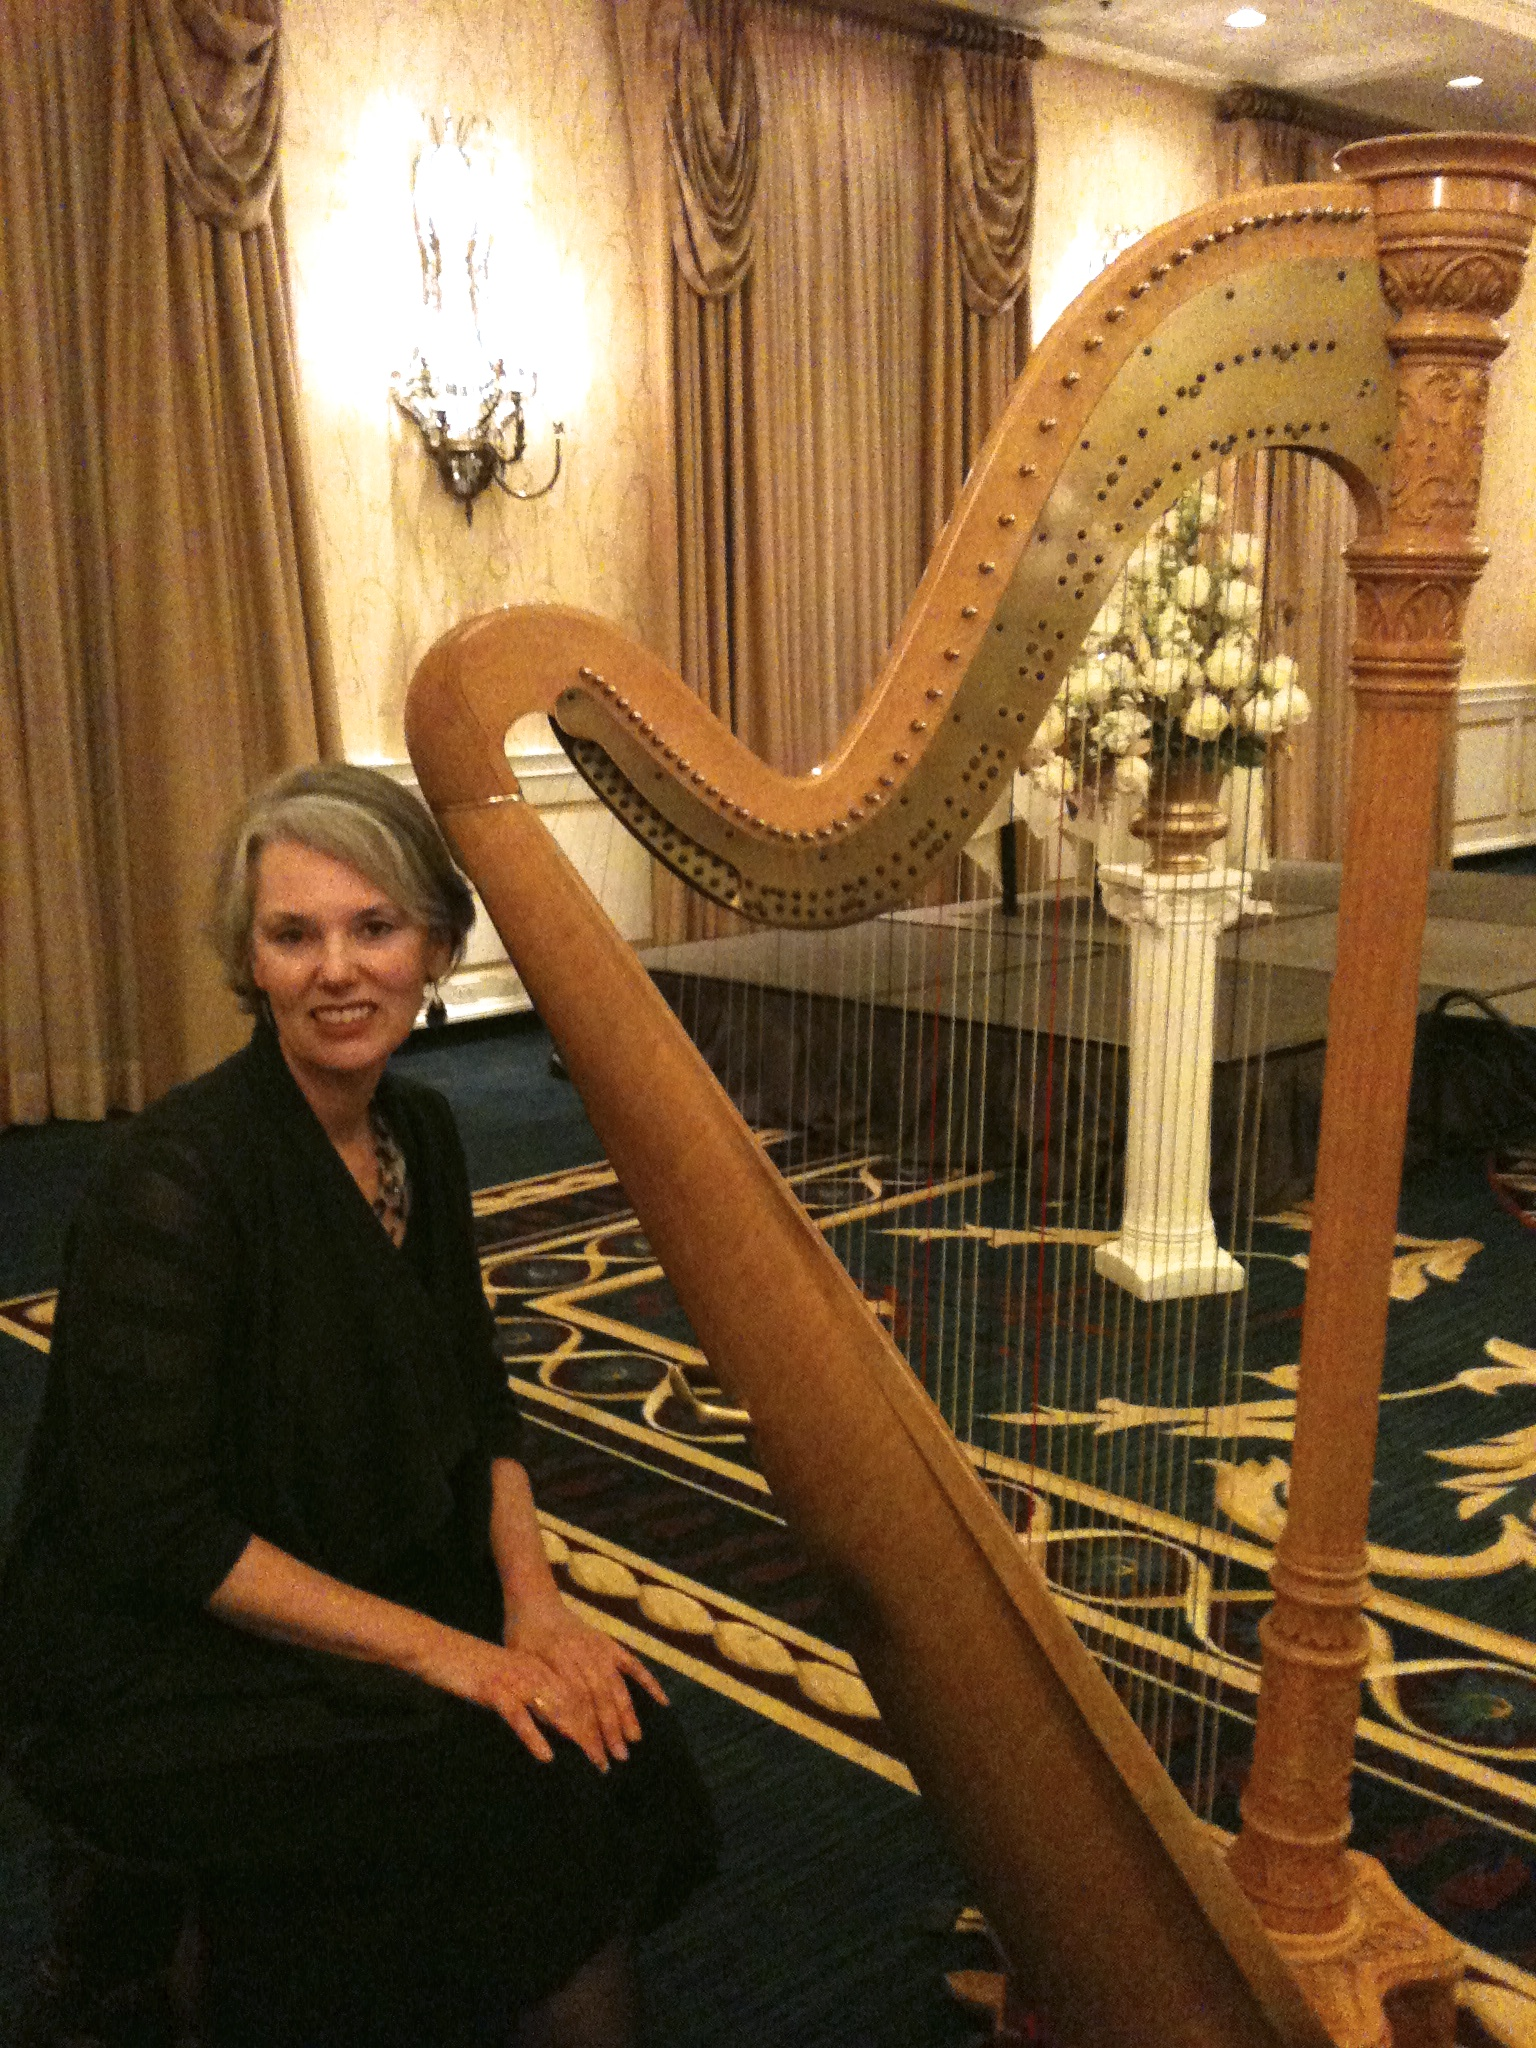 The harp is tuned, and I'm ready for the wedding.